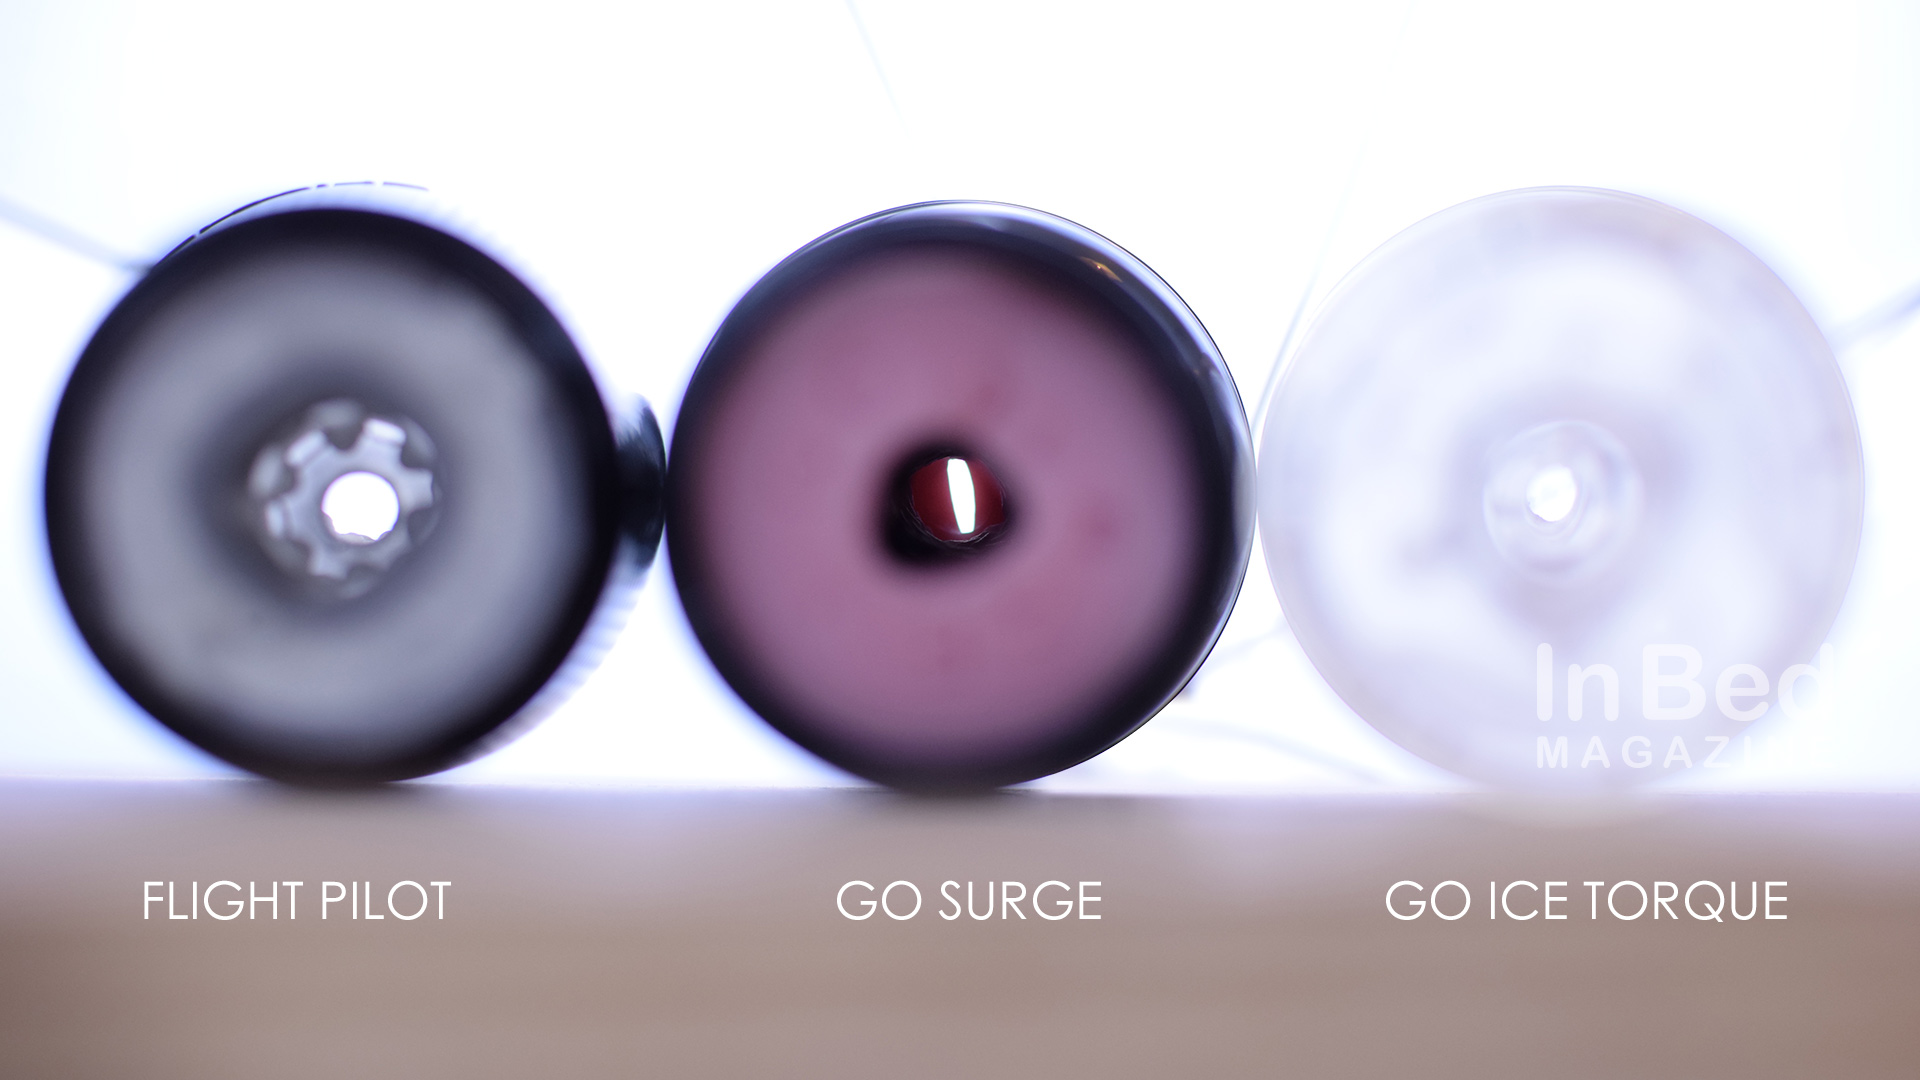 The Fleshlight Flight allows more air to pass through for drying.